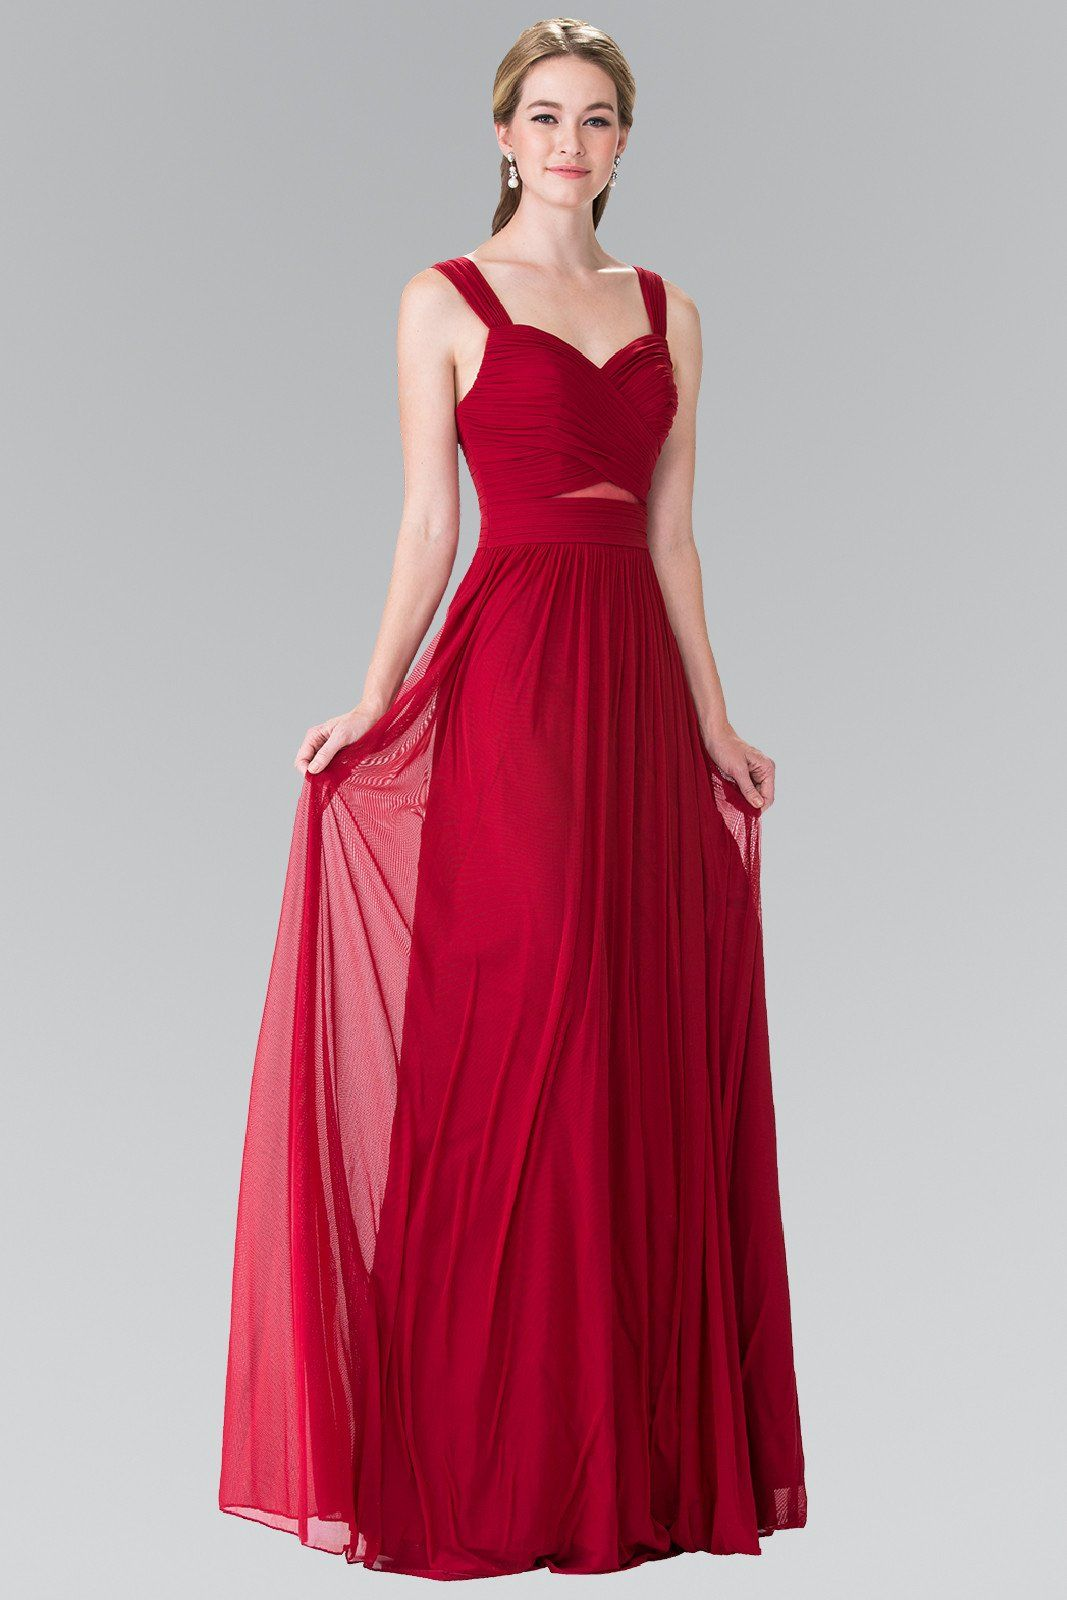 Long chiffon bridesmaid dress gl2366 simply fab dress elegant long chiffon bridesmaid dress gl2366 simply fab dress ombrellifo Gallery